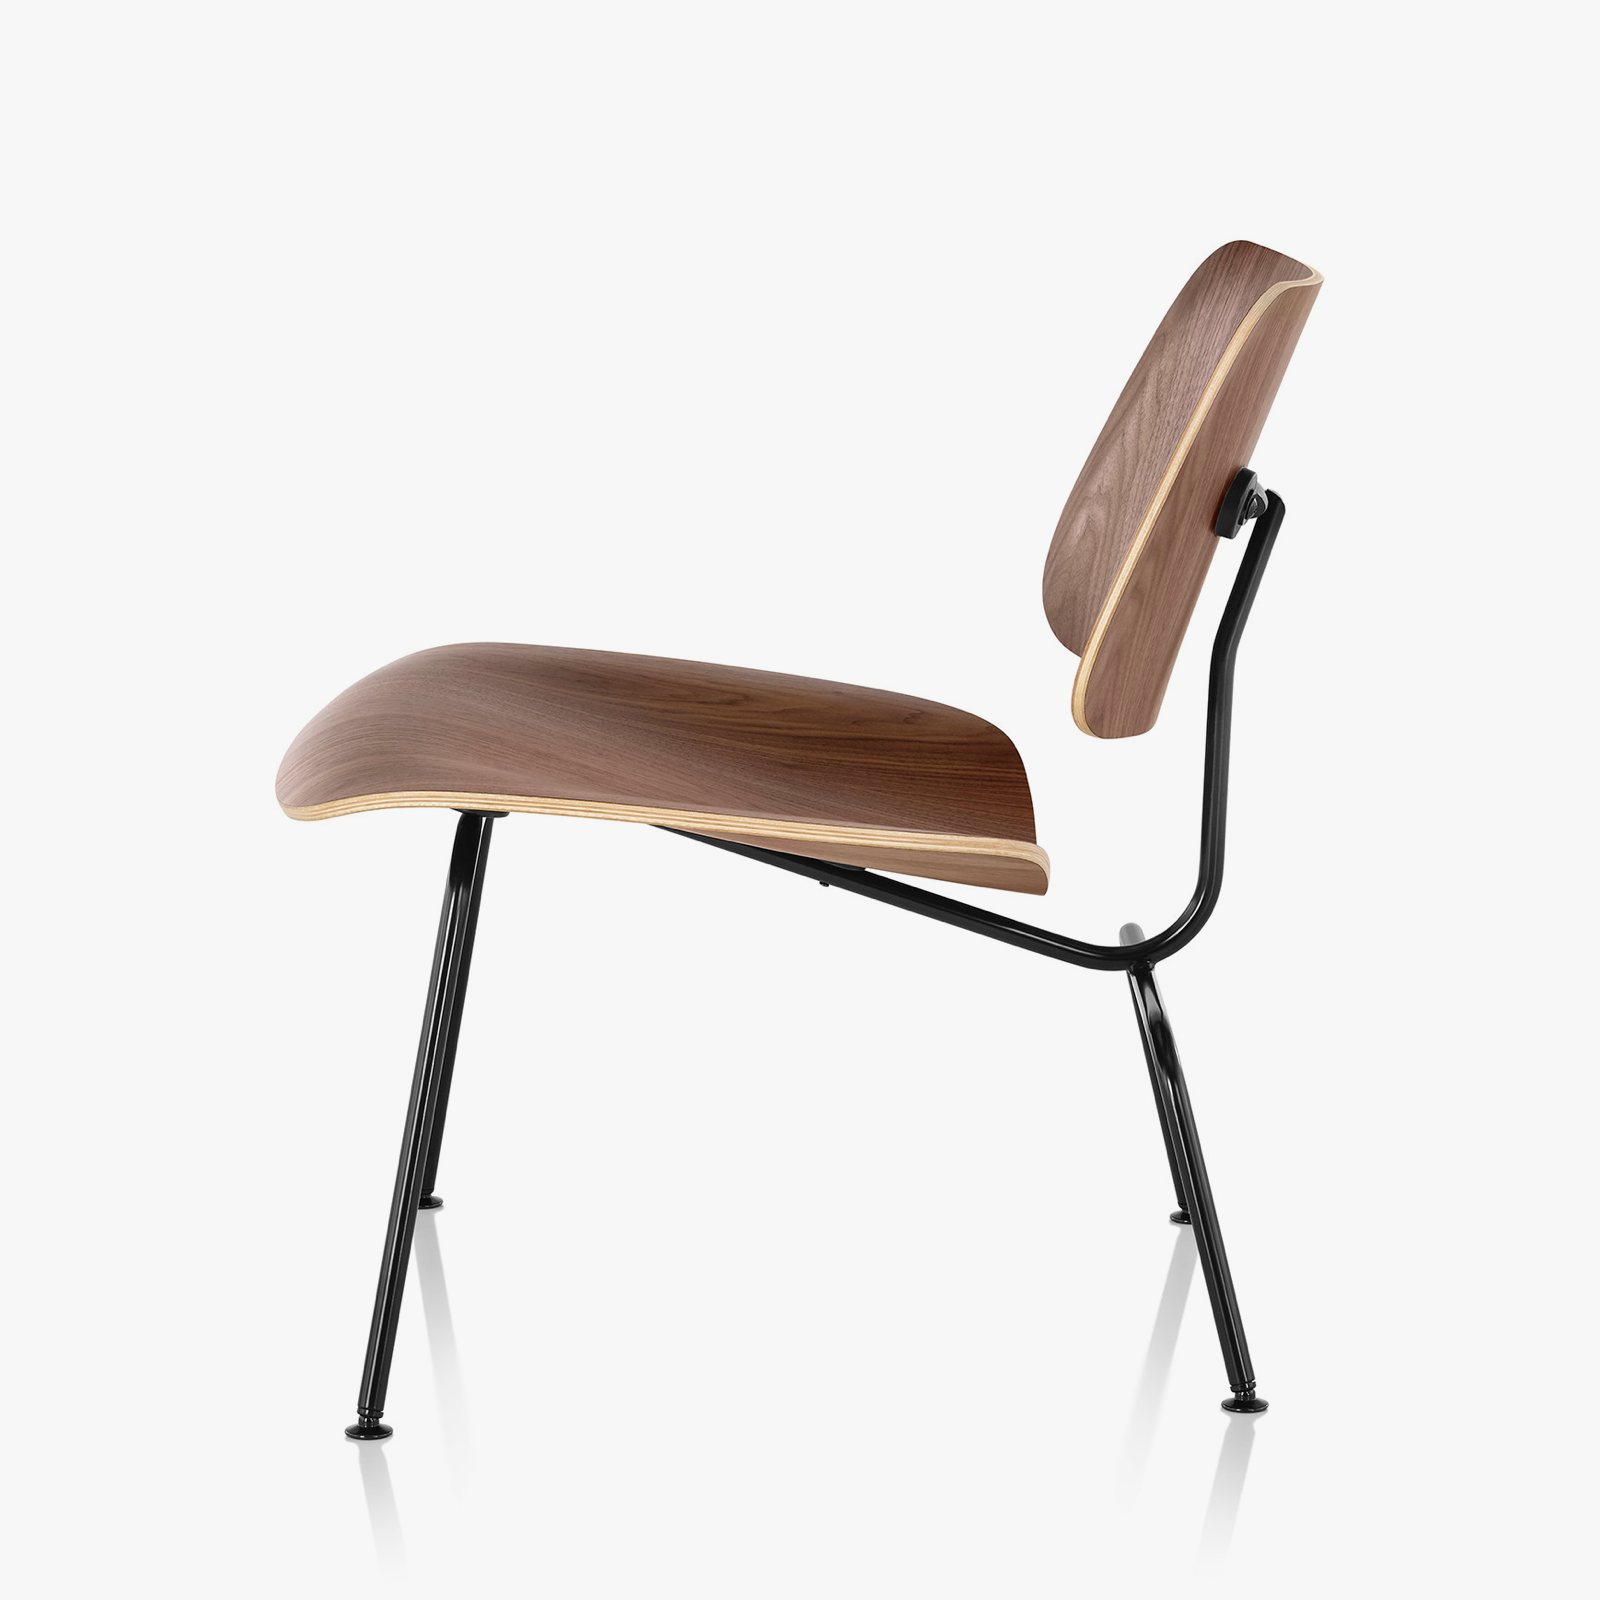 Eames Molded Plywood Lounge Chair Metal Base, Walnut + Black, Side View.